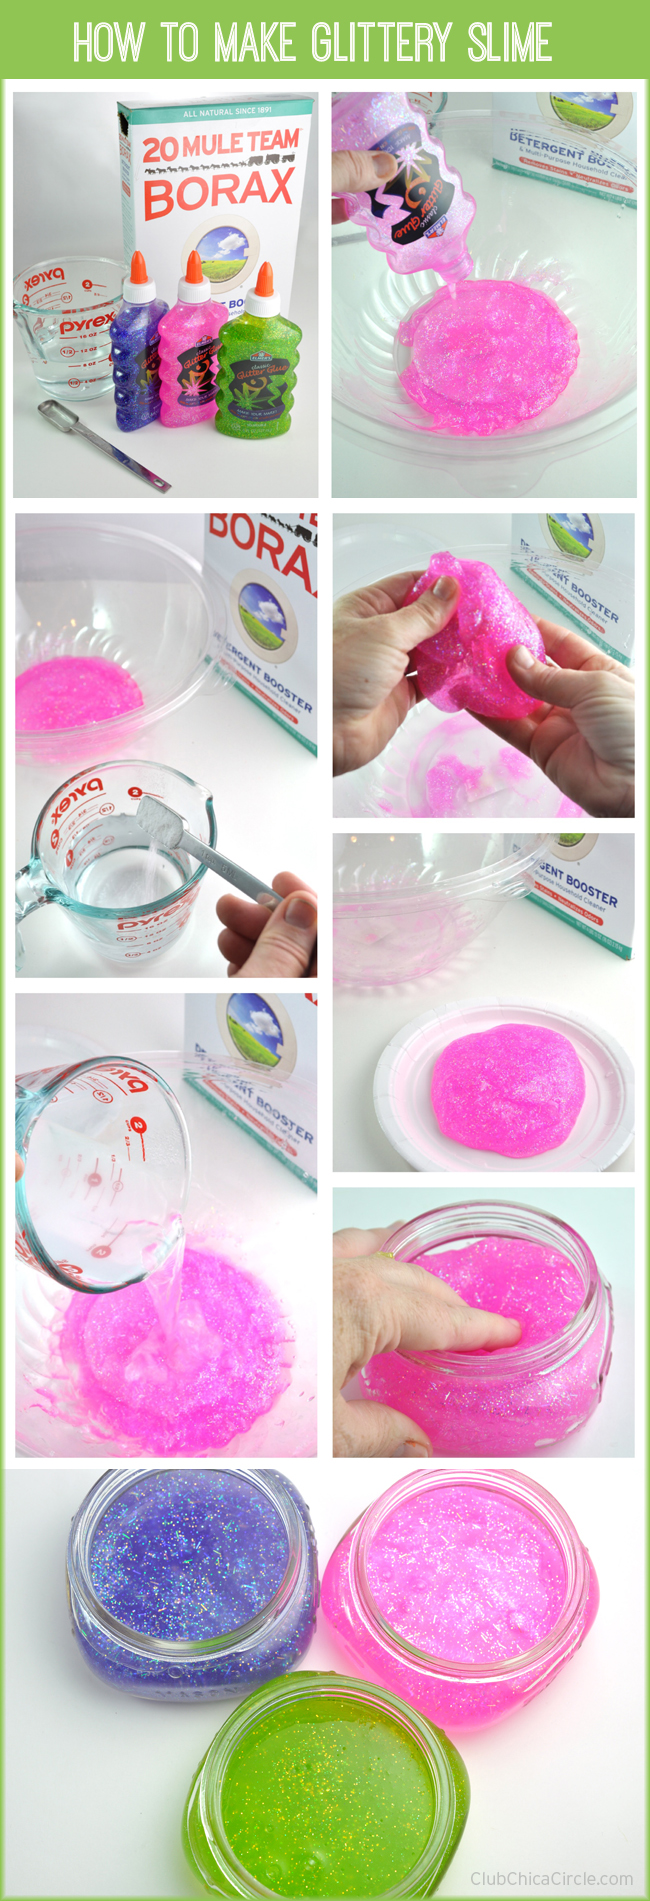 Eyeball mason jars with homemade glittery slime how to make easy homemade glittery slime for kids ccuart Image collections